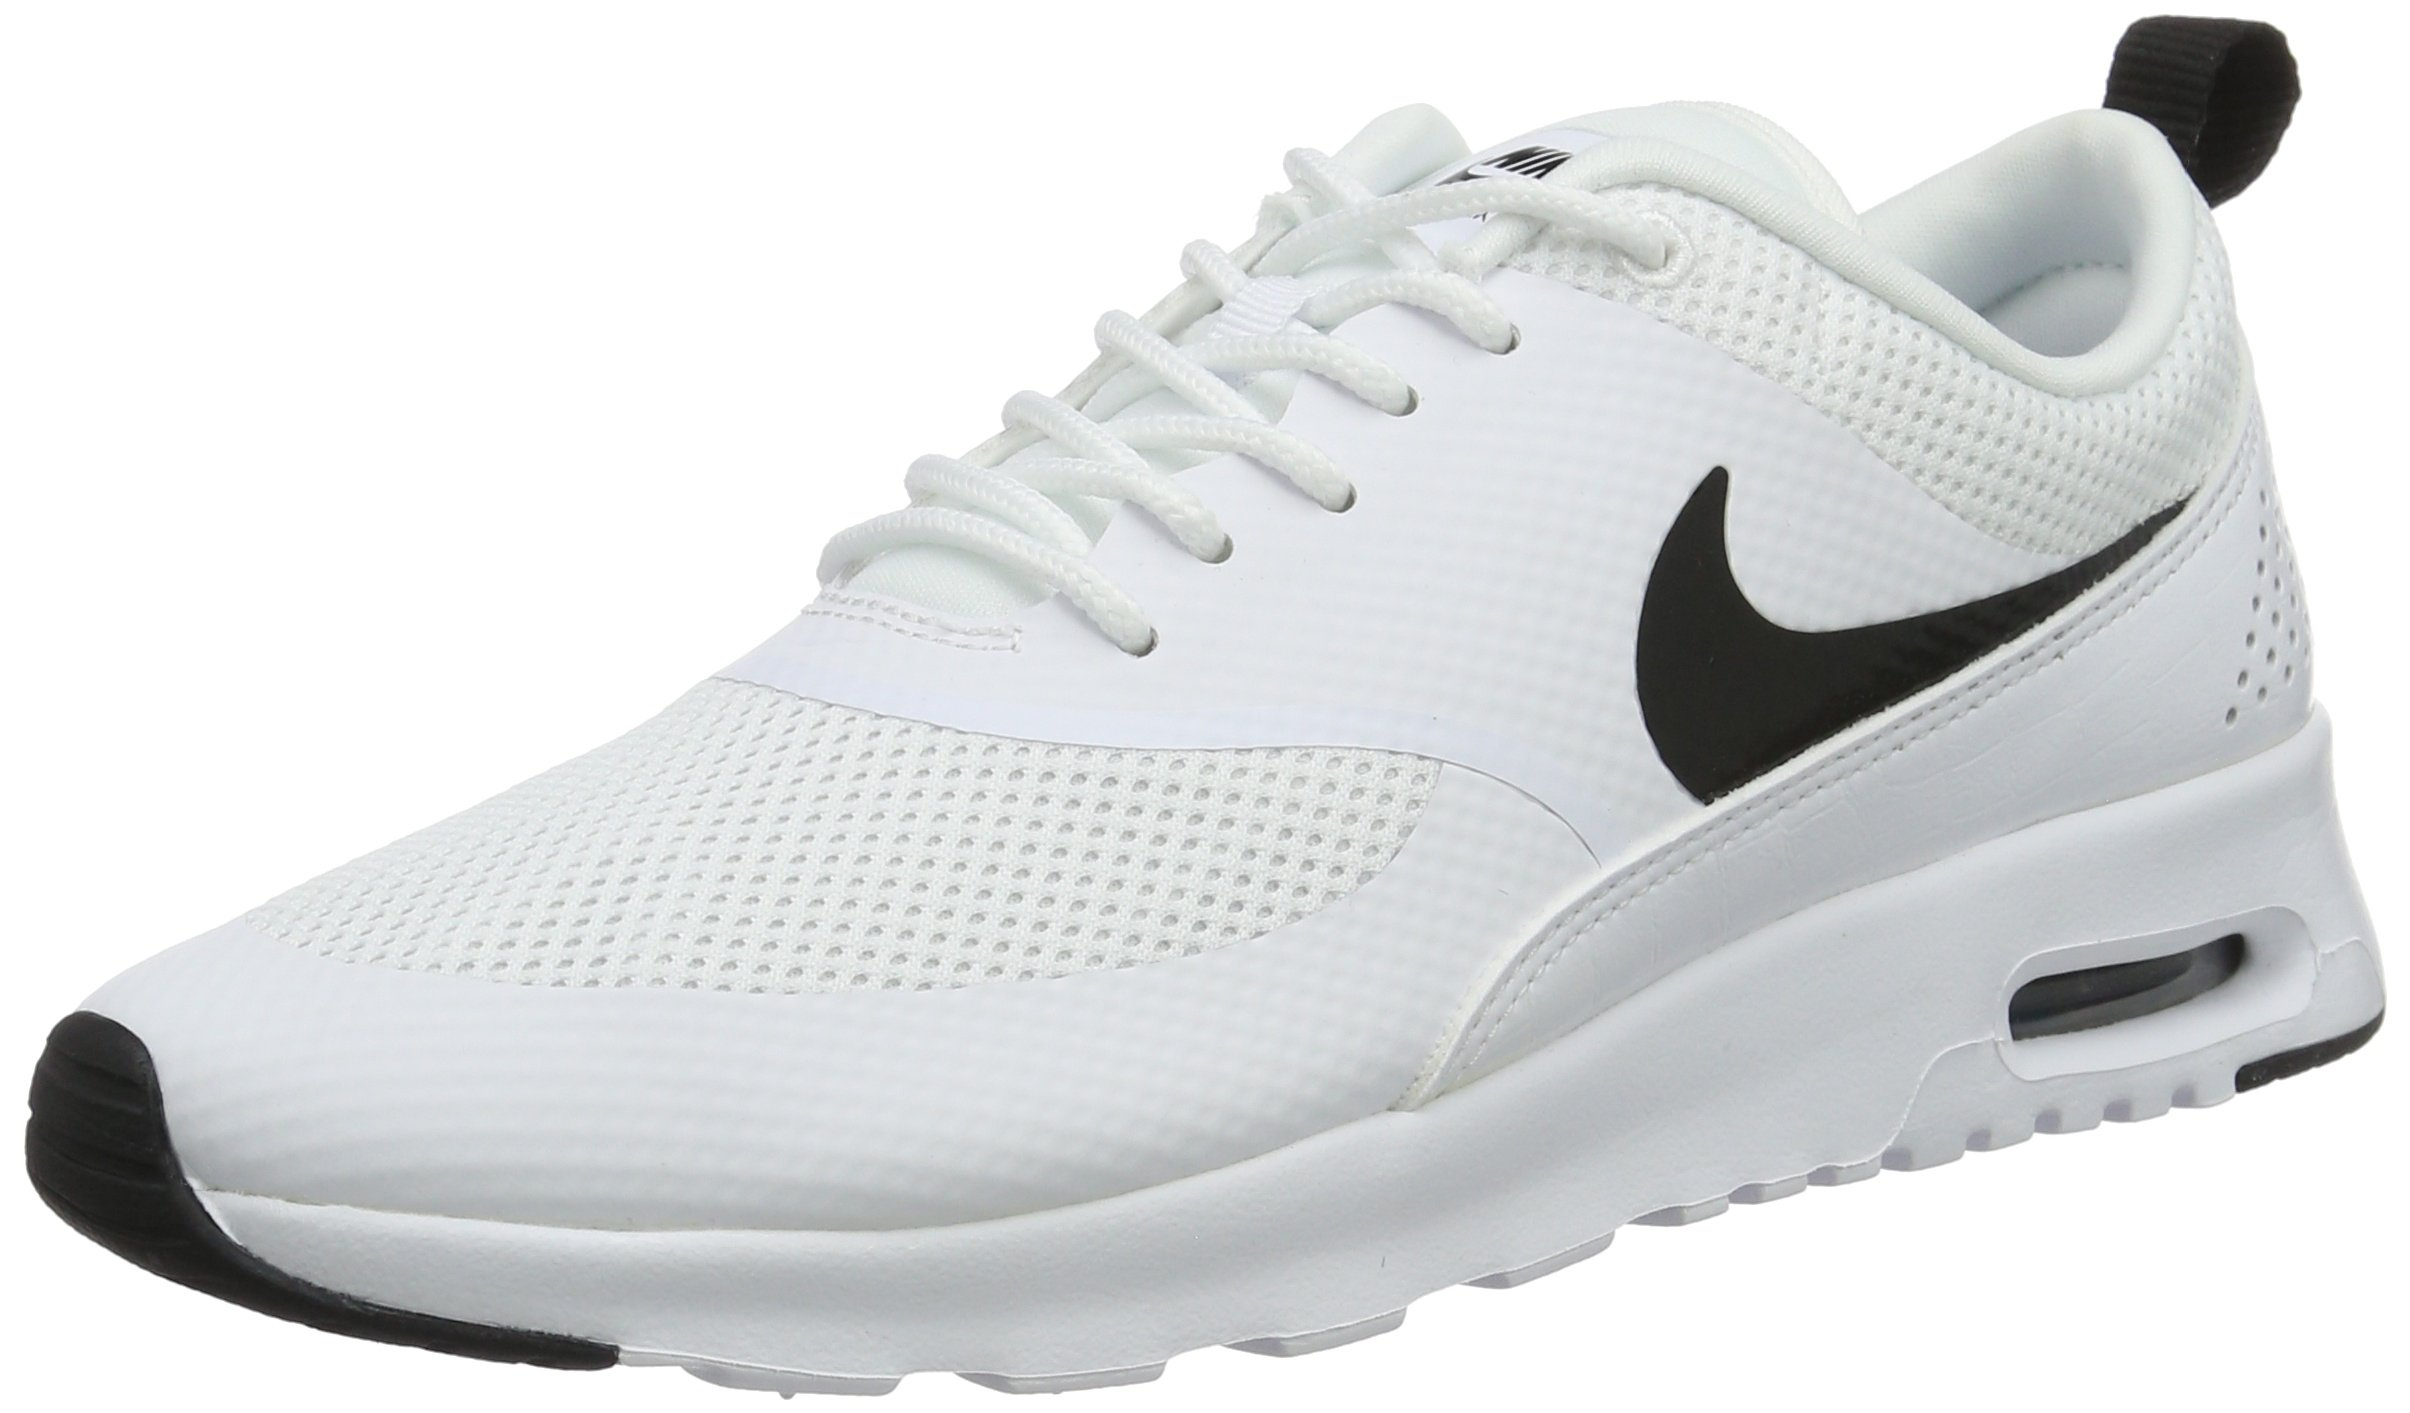 a6720eba73 Galleon - Nike Womens Air Max Thea Running Shoes White/Black 599409-103  Size 8.5